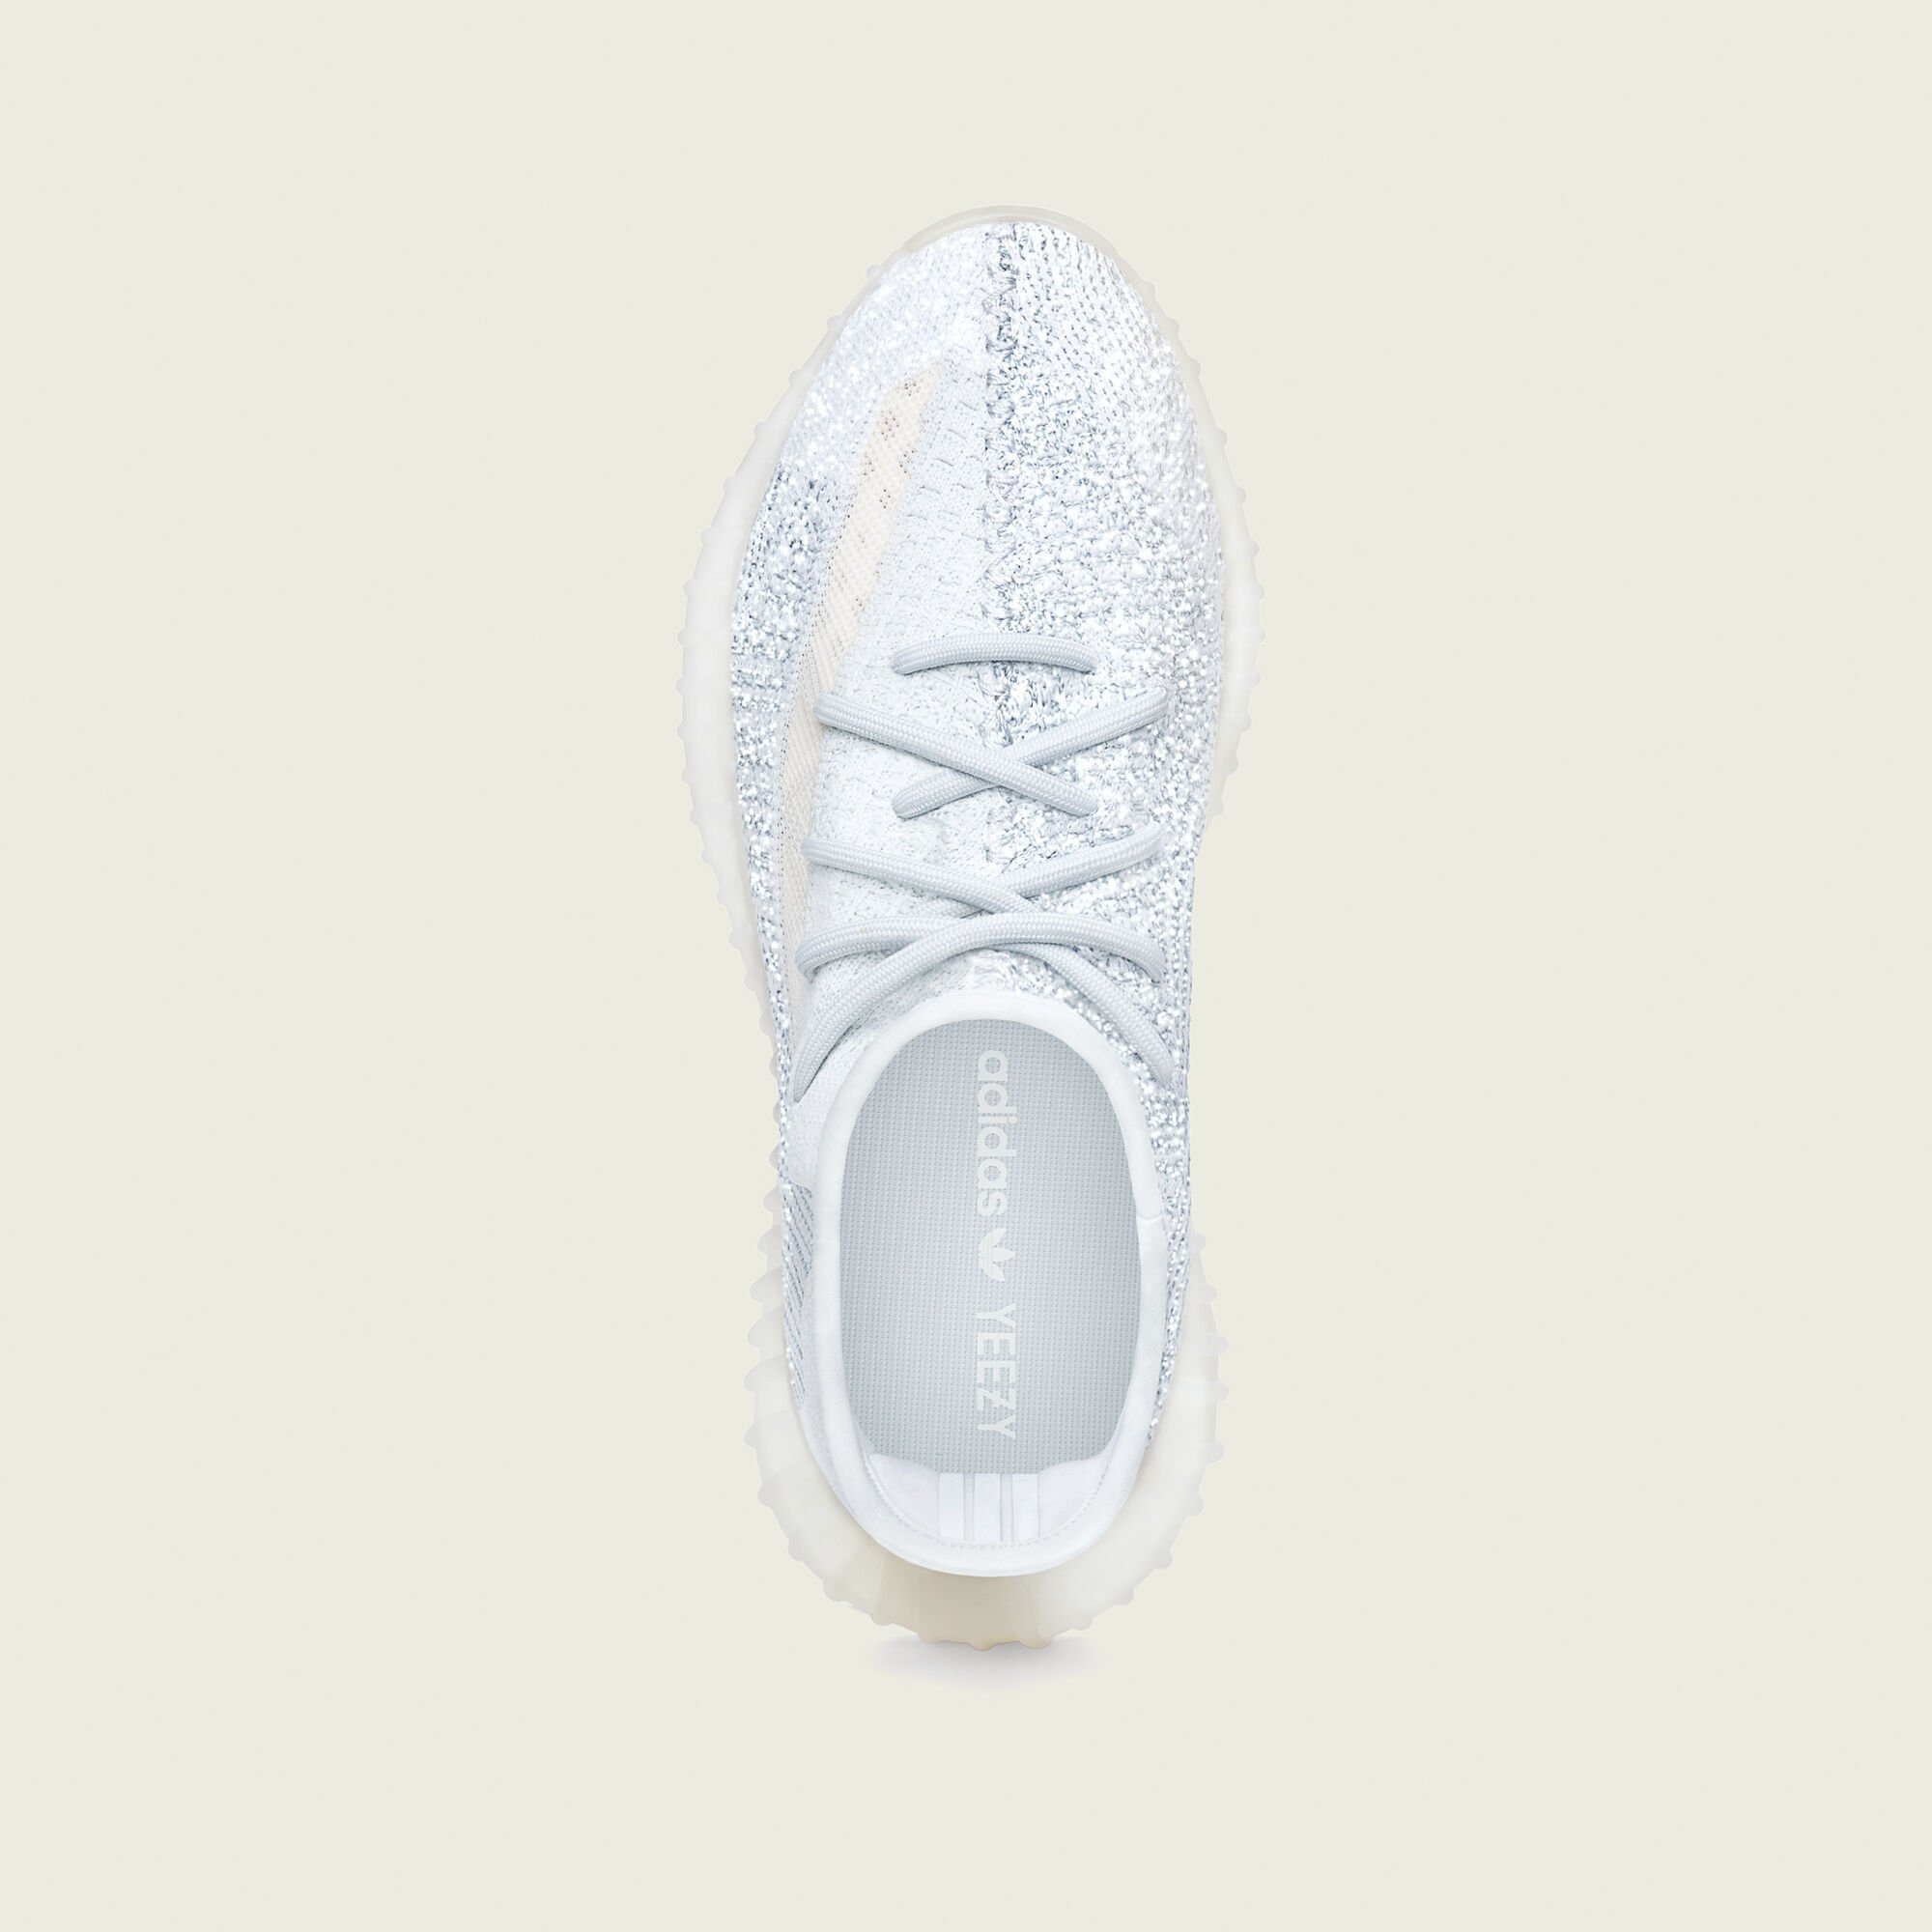 adidas Yeezy Boost 350 V2 Cloud White (Reflective) (FW5317)